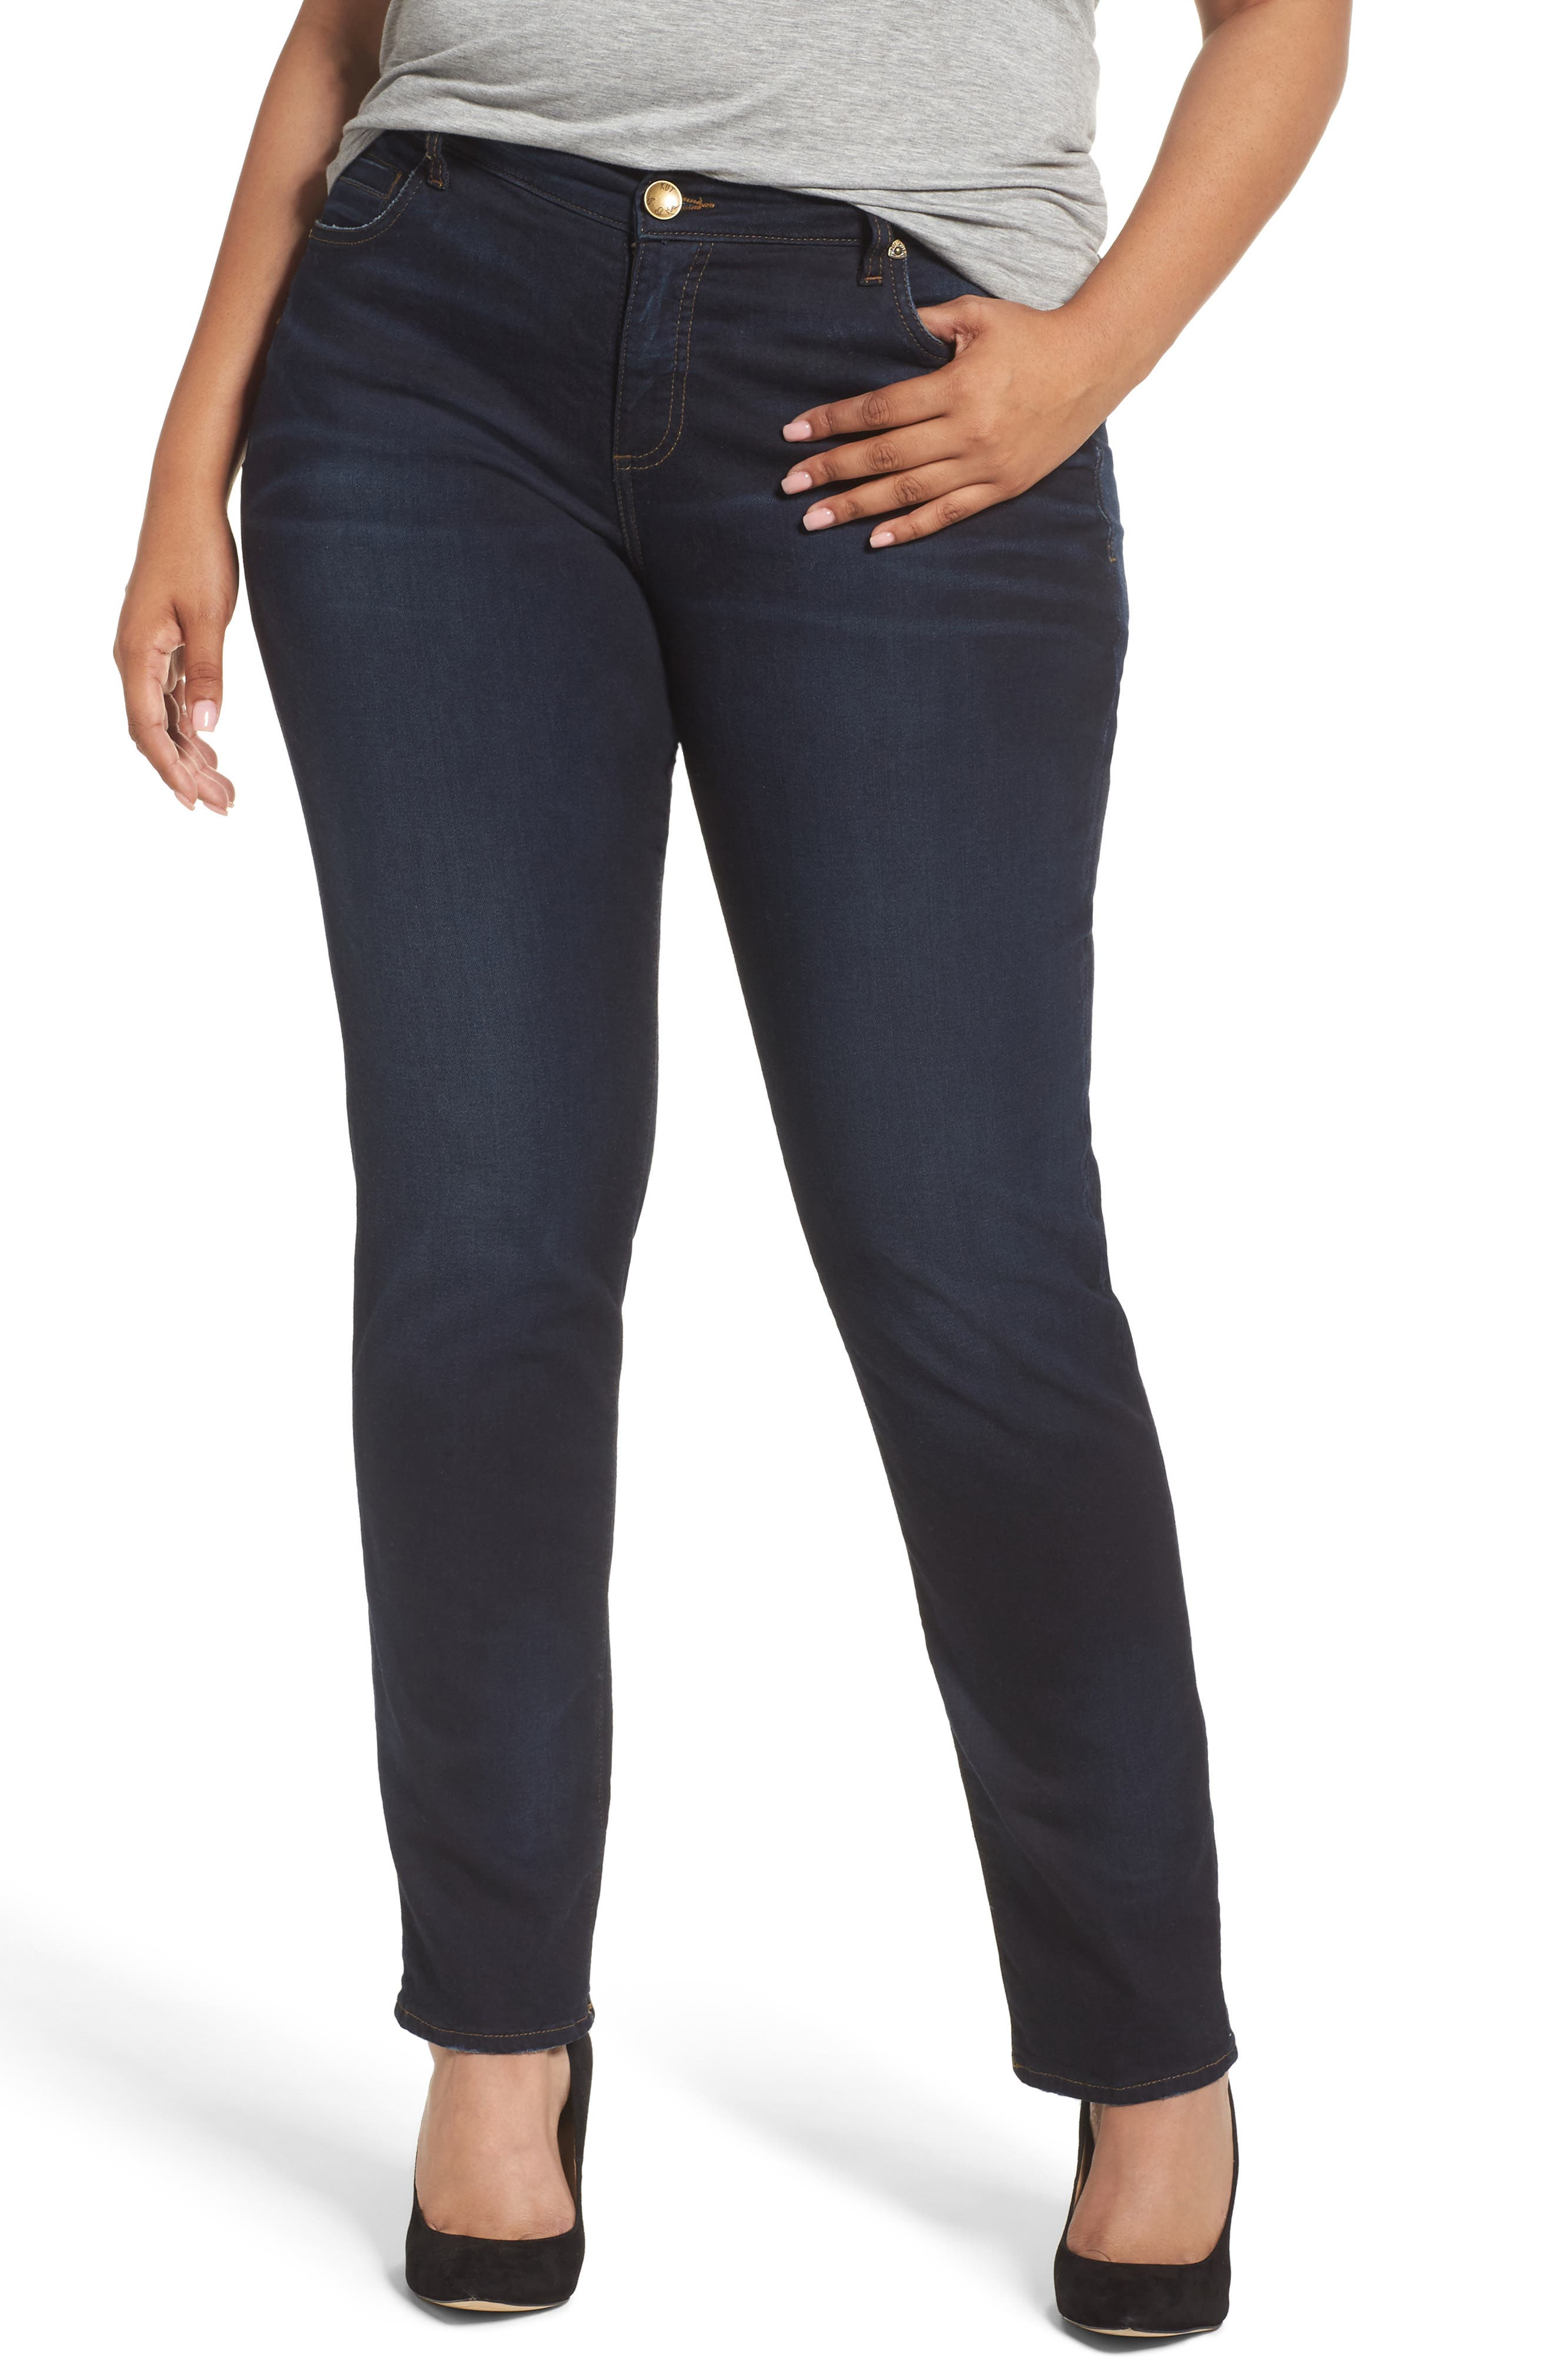 Diana Stretch Skinny Jeans,                             Main thumbnail 1, color,